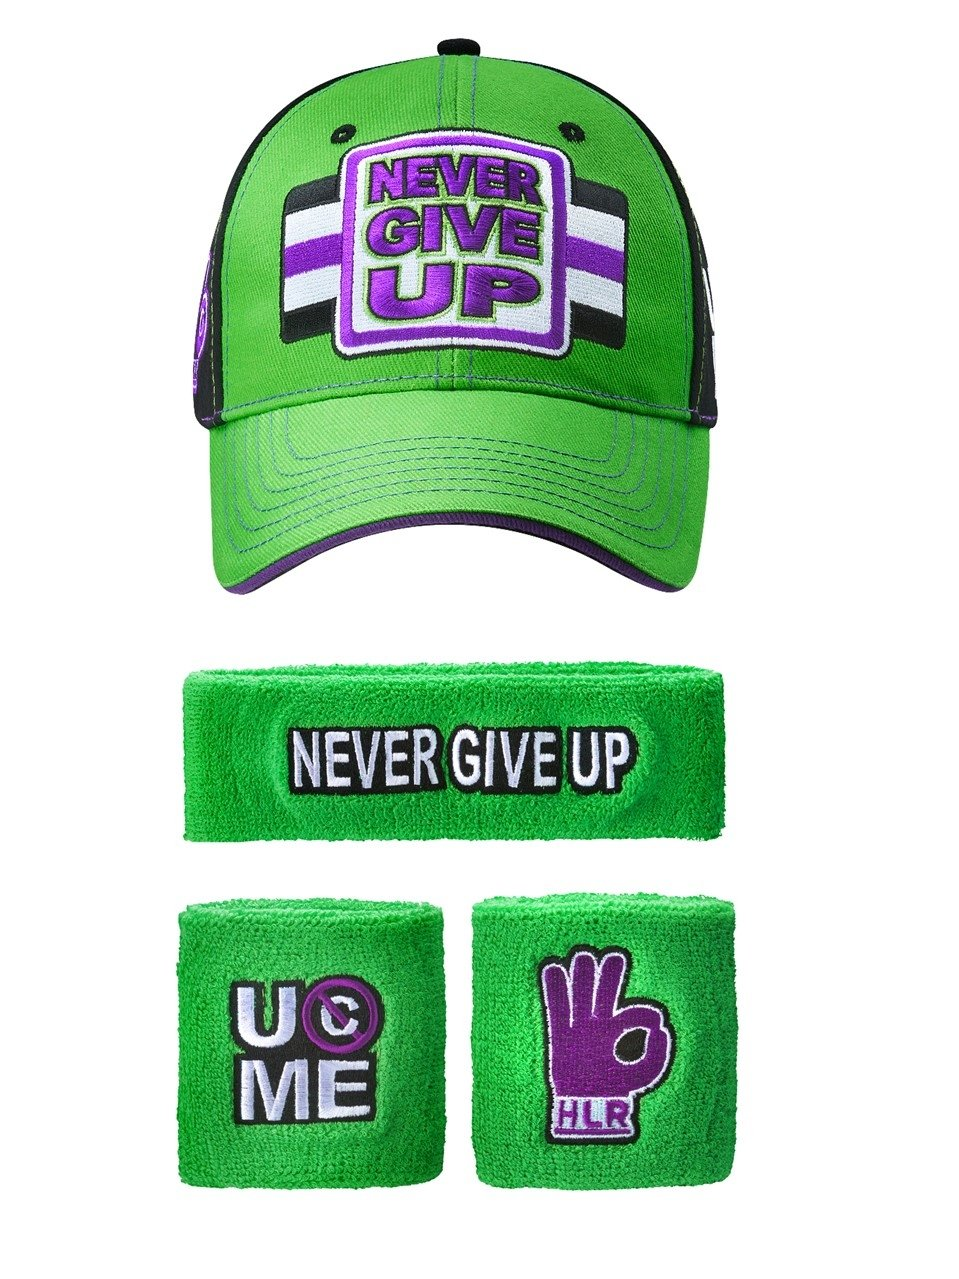 John Cena WWE Never Give Up Green Purple Baseball Hat Headband Wristband Set by Freeze